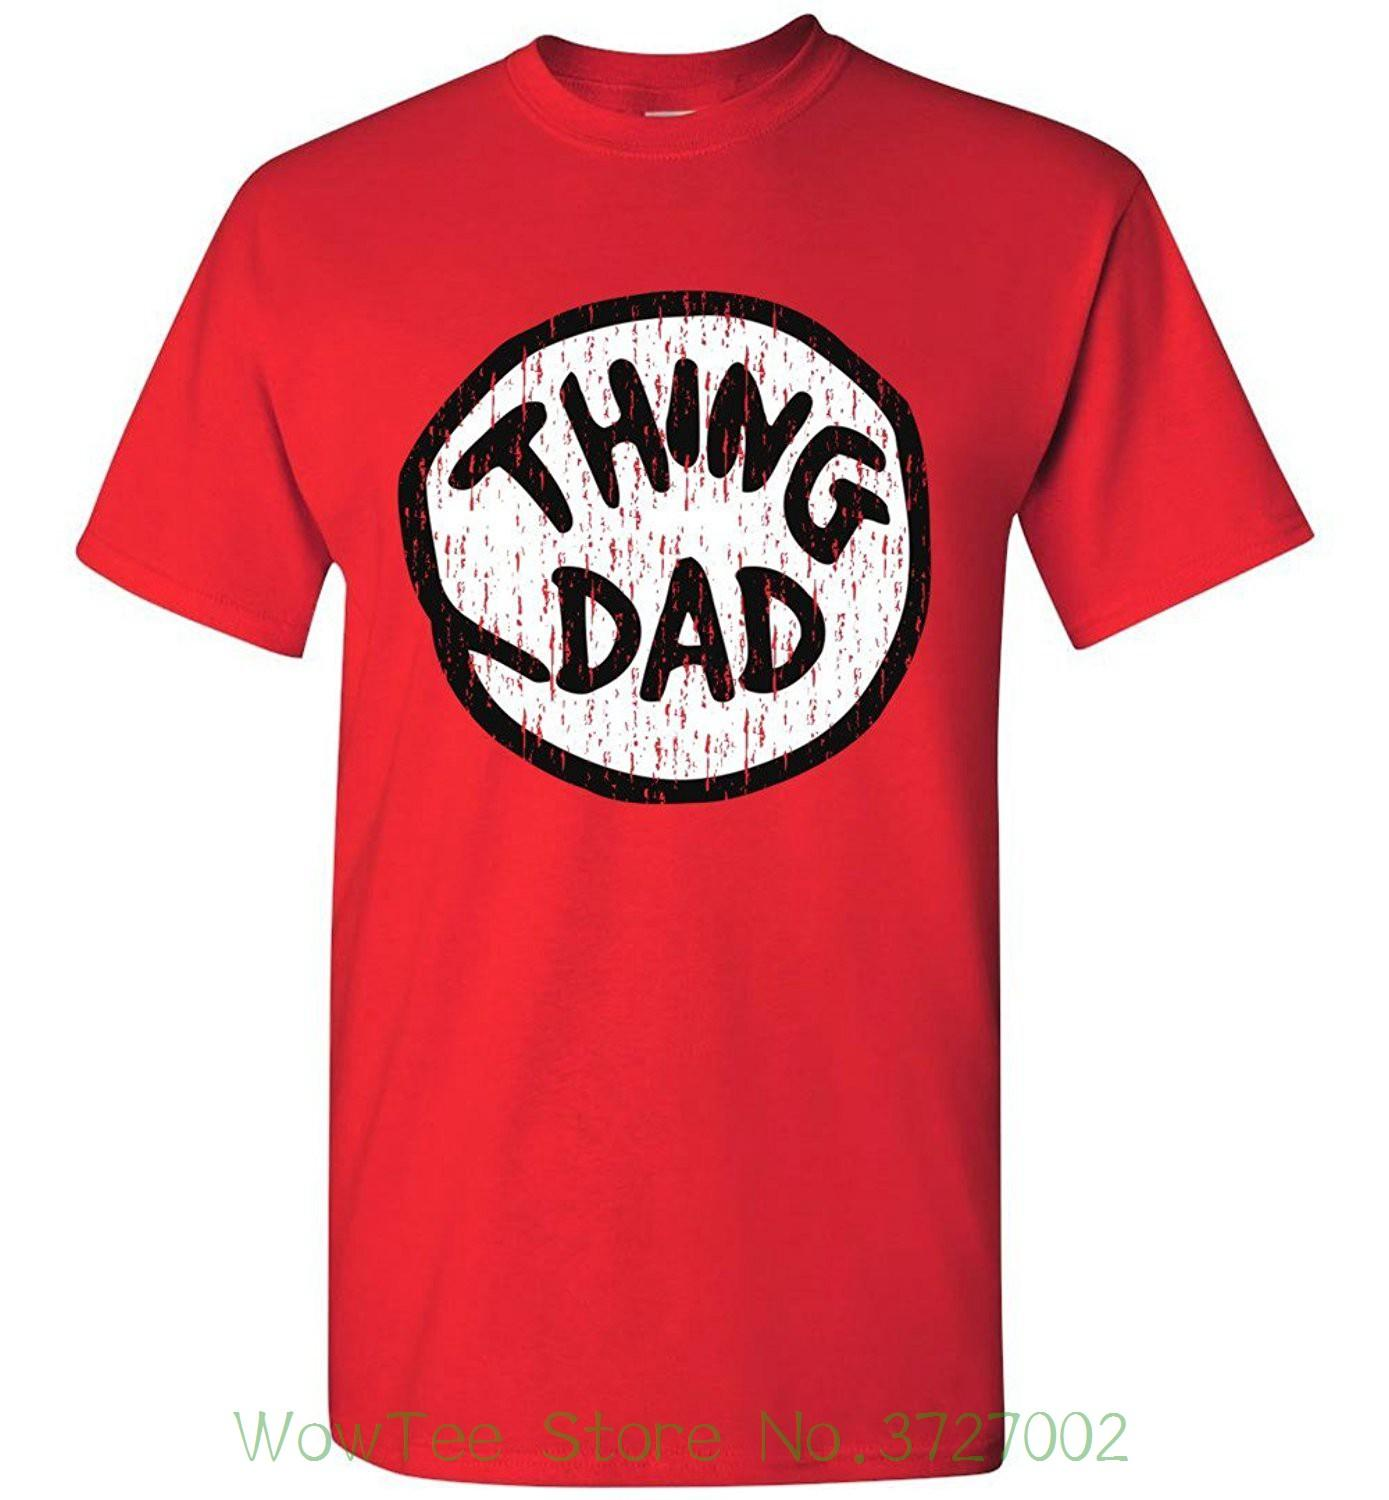 2d80438ce3e Clothingforfun Thing Dad Vintage T-shirt Printed Summer Style Tees Male  Harajuku Top Fitness Brand Clothing Online with  18.15 Piece on Wowteestore s  Store ...